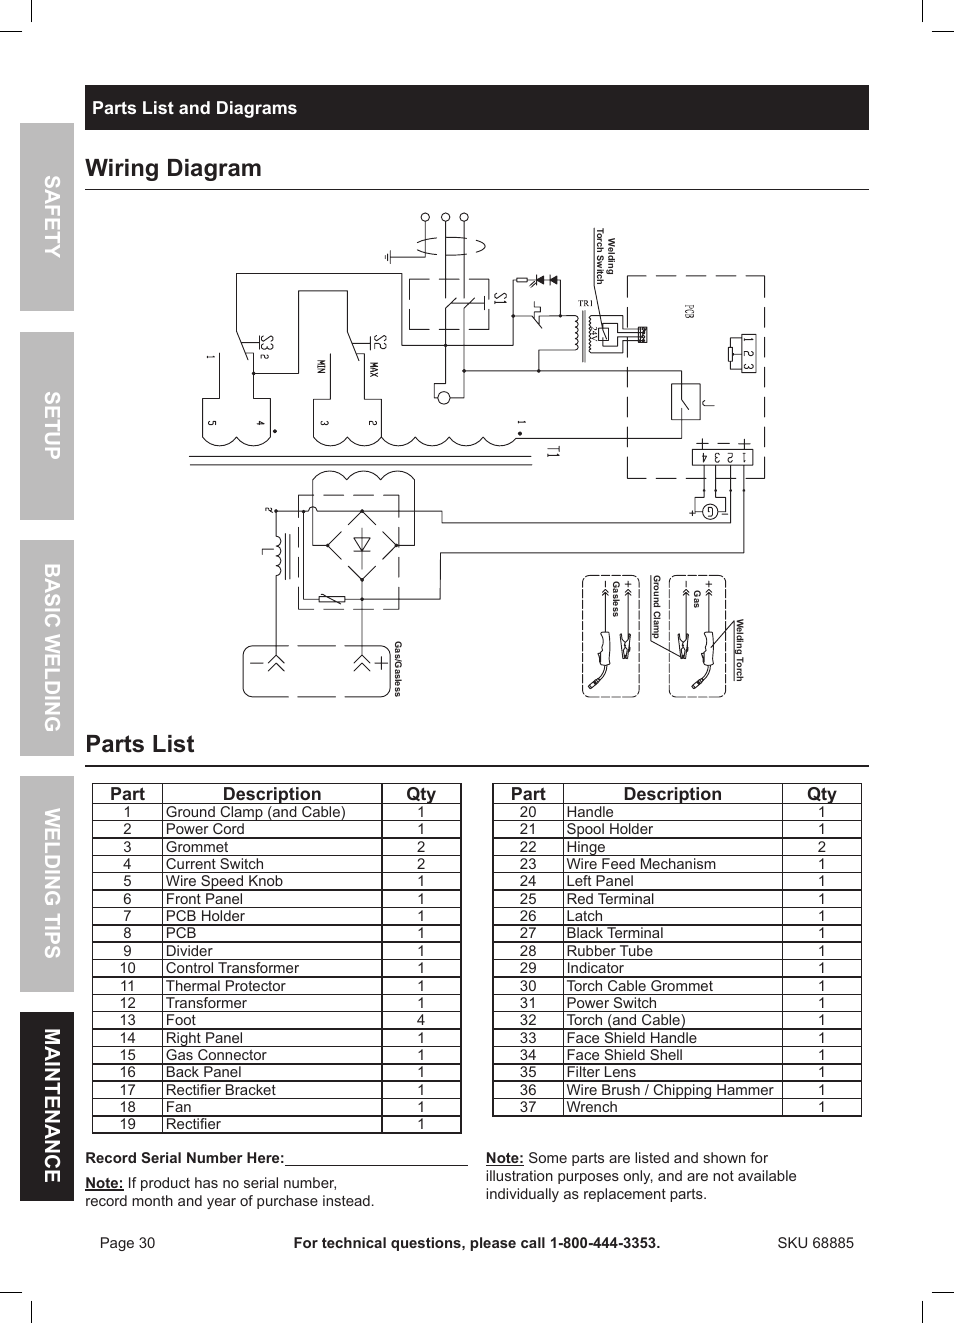 Chicago Electric Parts Diagrams Free Download • Playapk.co